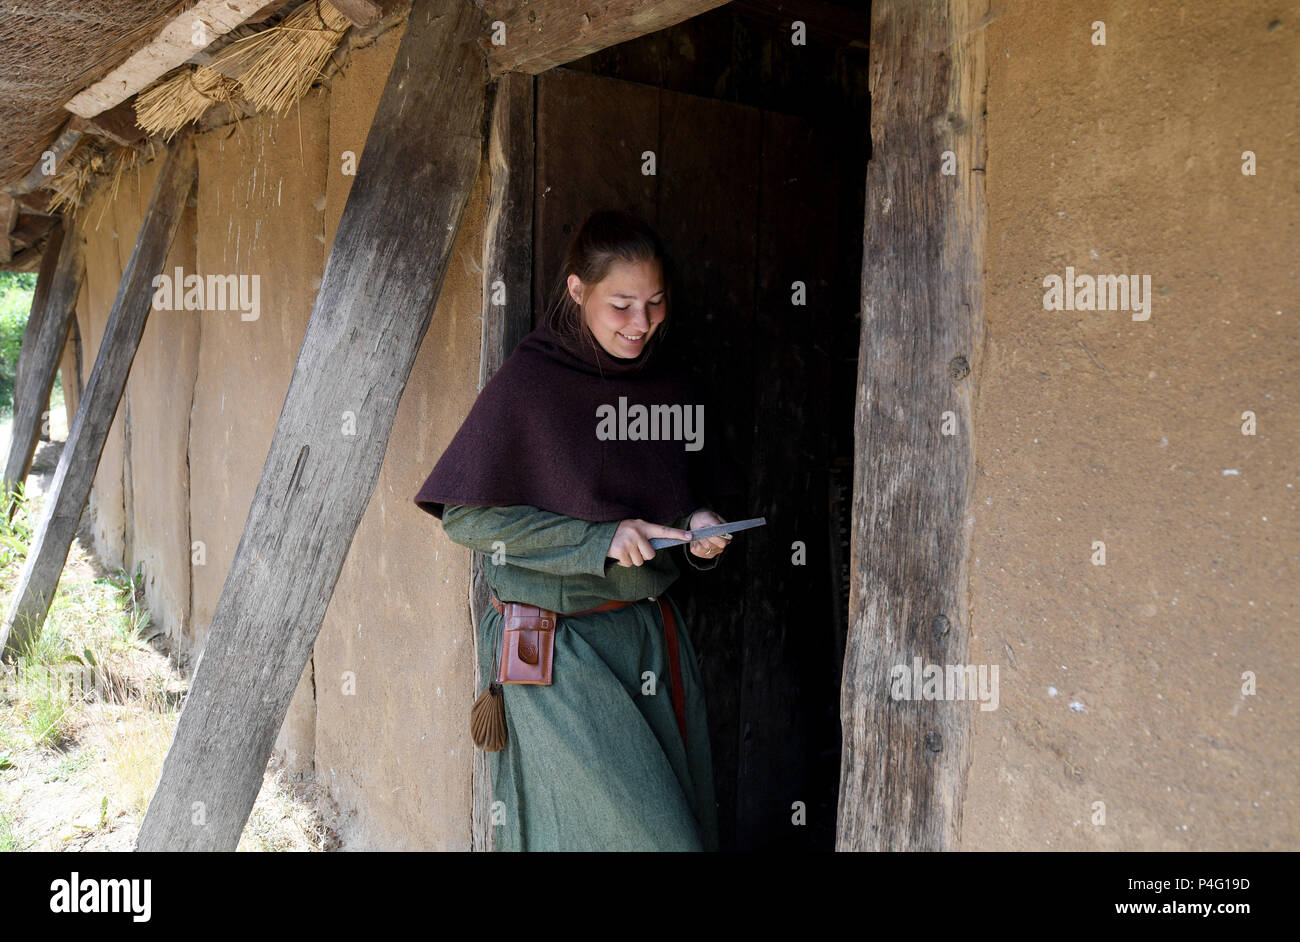 Danewerk, Germany. 19th June, 2018. Intern Caro working in authentic Viking clothing on the site of the Viking houses in Hedeby. The UNESCO world heritage committee will decide on the admission of new monuments to its list at a session between the 24 June and 3 July. The Viking sites Hedeby and Danevirke are Germany's applicants. Credit: Carsten Rehder/dpa/Alamy Live News - Stock Image